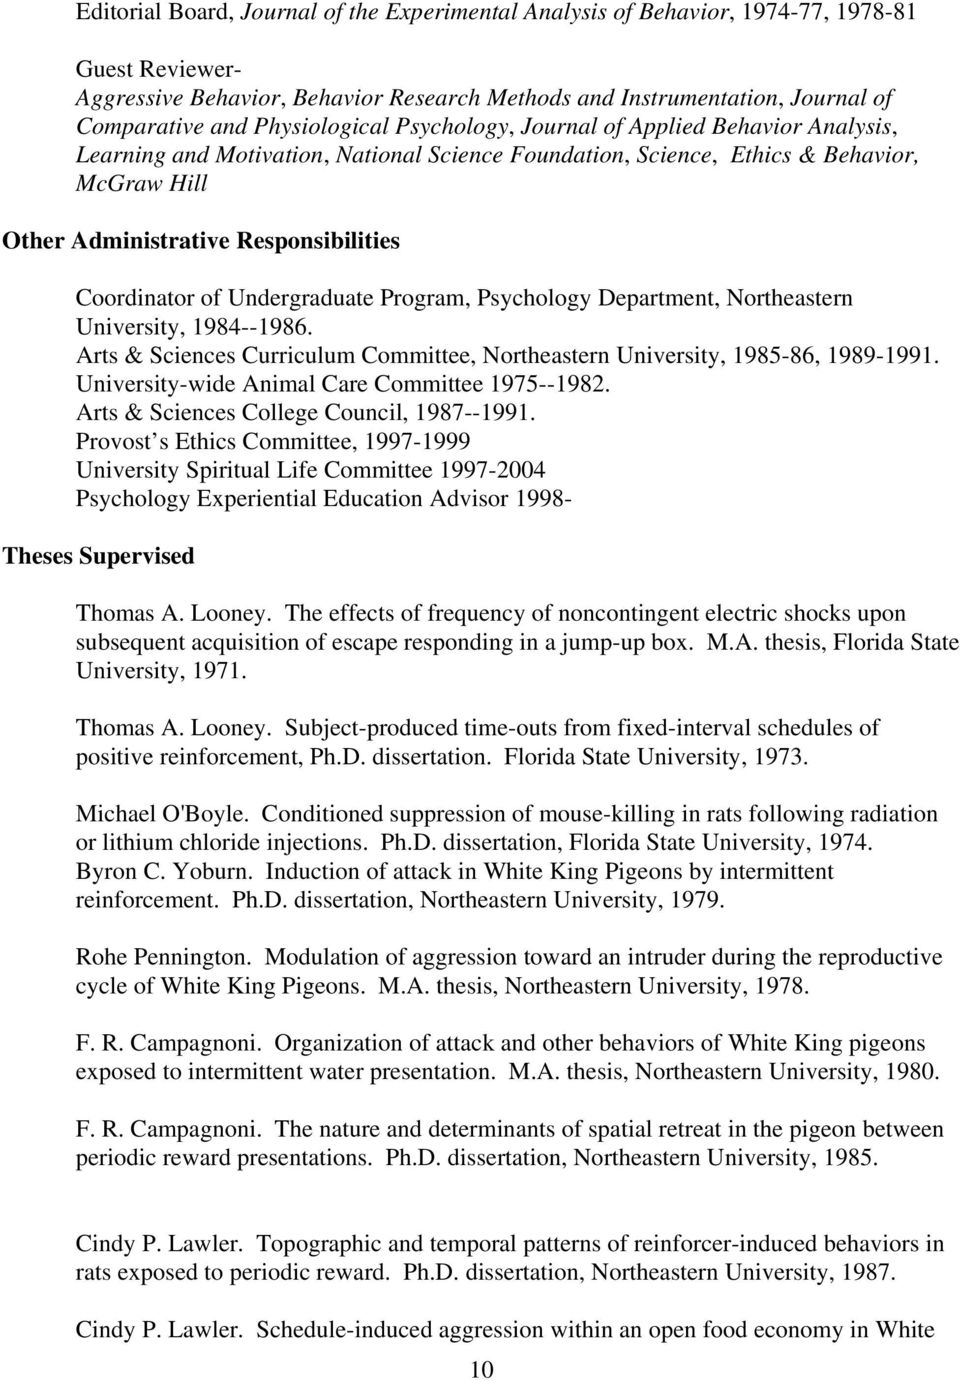 Coordinator of Undergraduate Program, Psychology Department, Northeastern University, 1984--1986. Arts & Sciences Curriculum Committee, Northeastern University, 1985-86, 1989-1991.